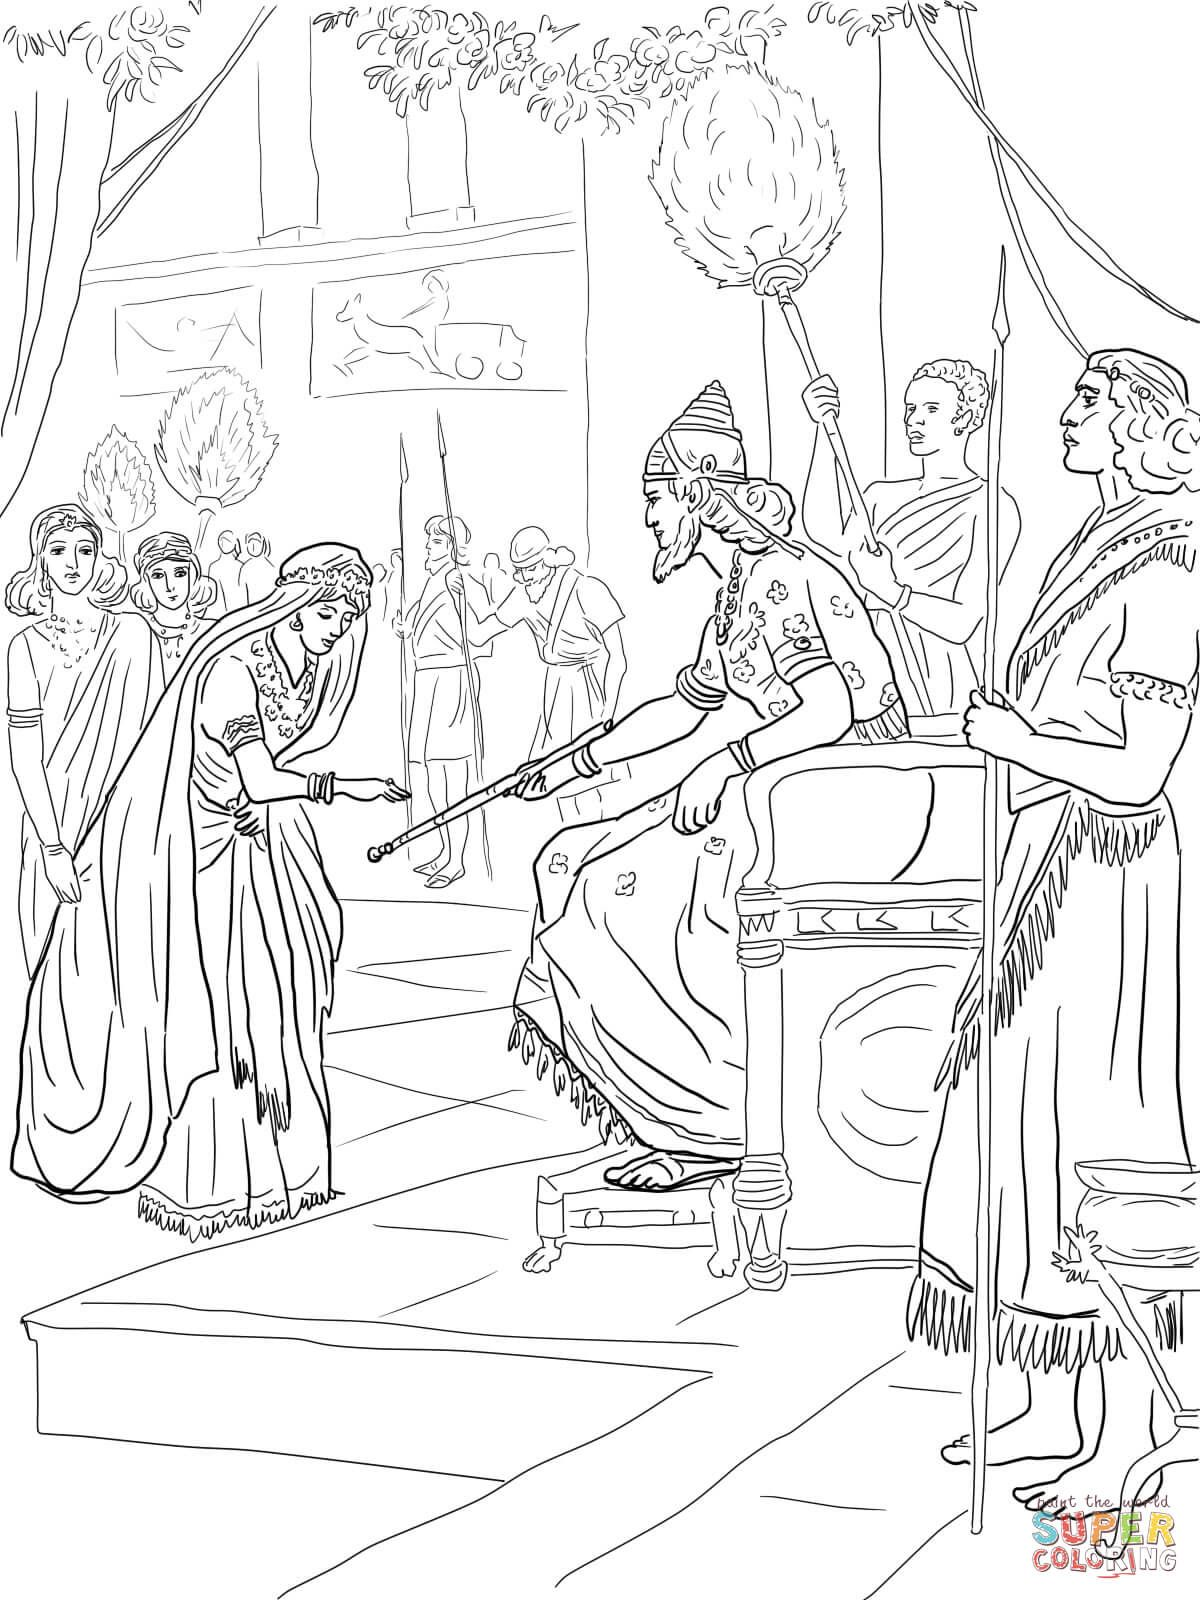 queen esther coloring page queen esther coloring pages coloring home esther coloring queen page